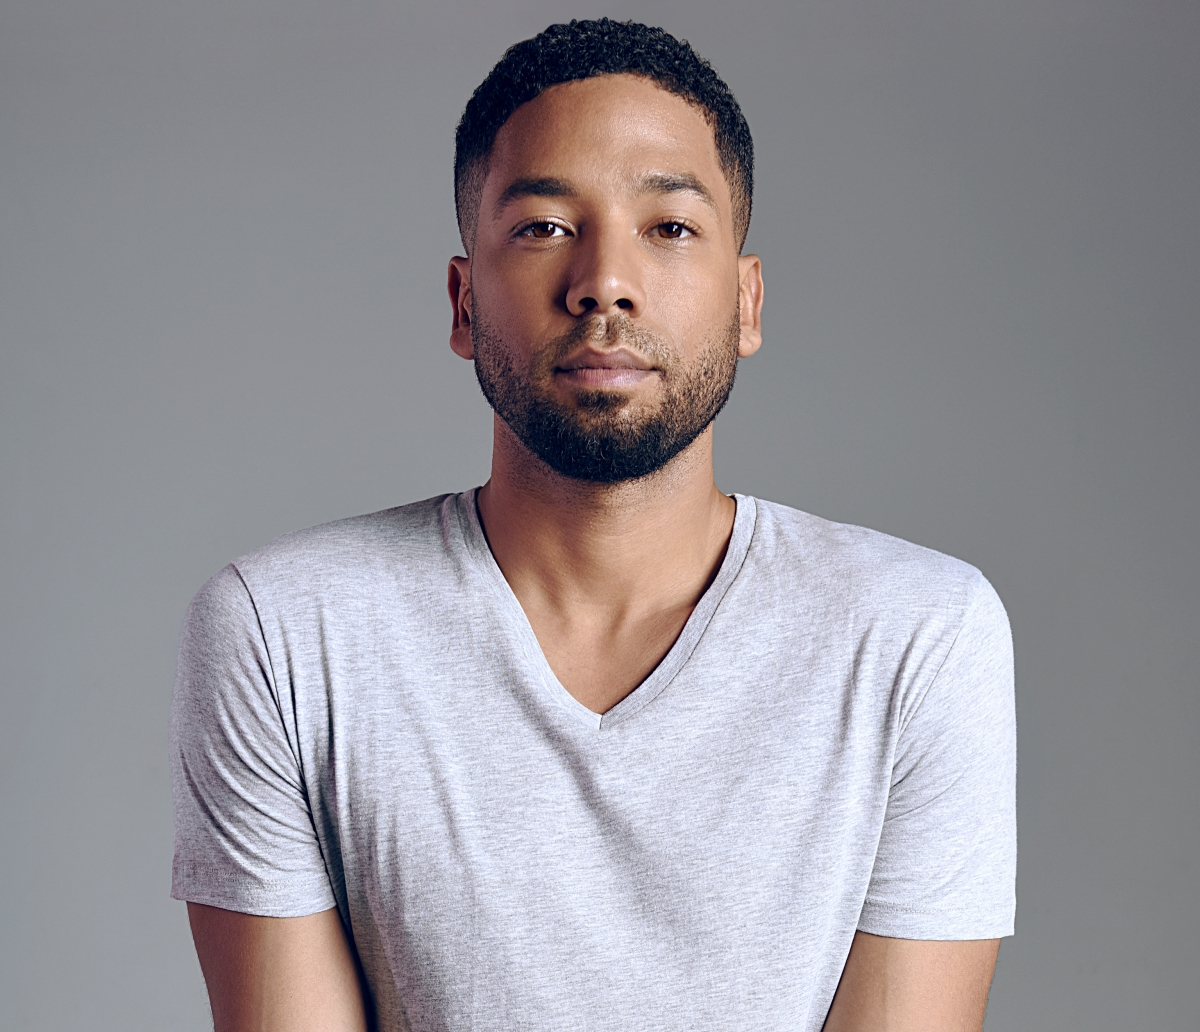 jussie smollett - photo #23